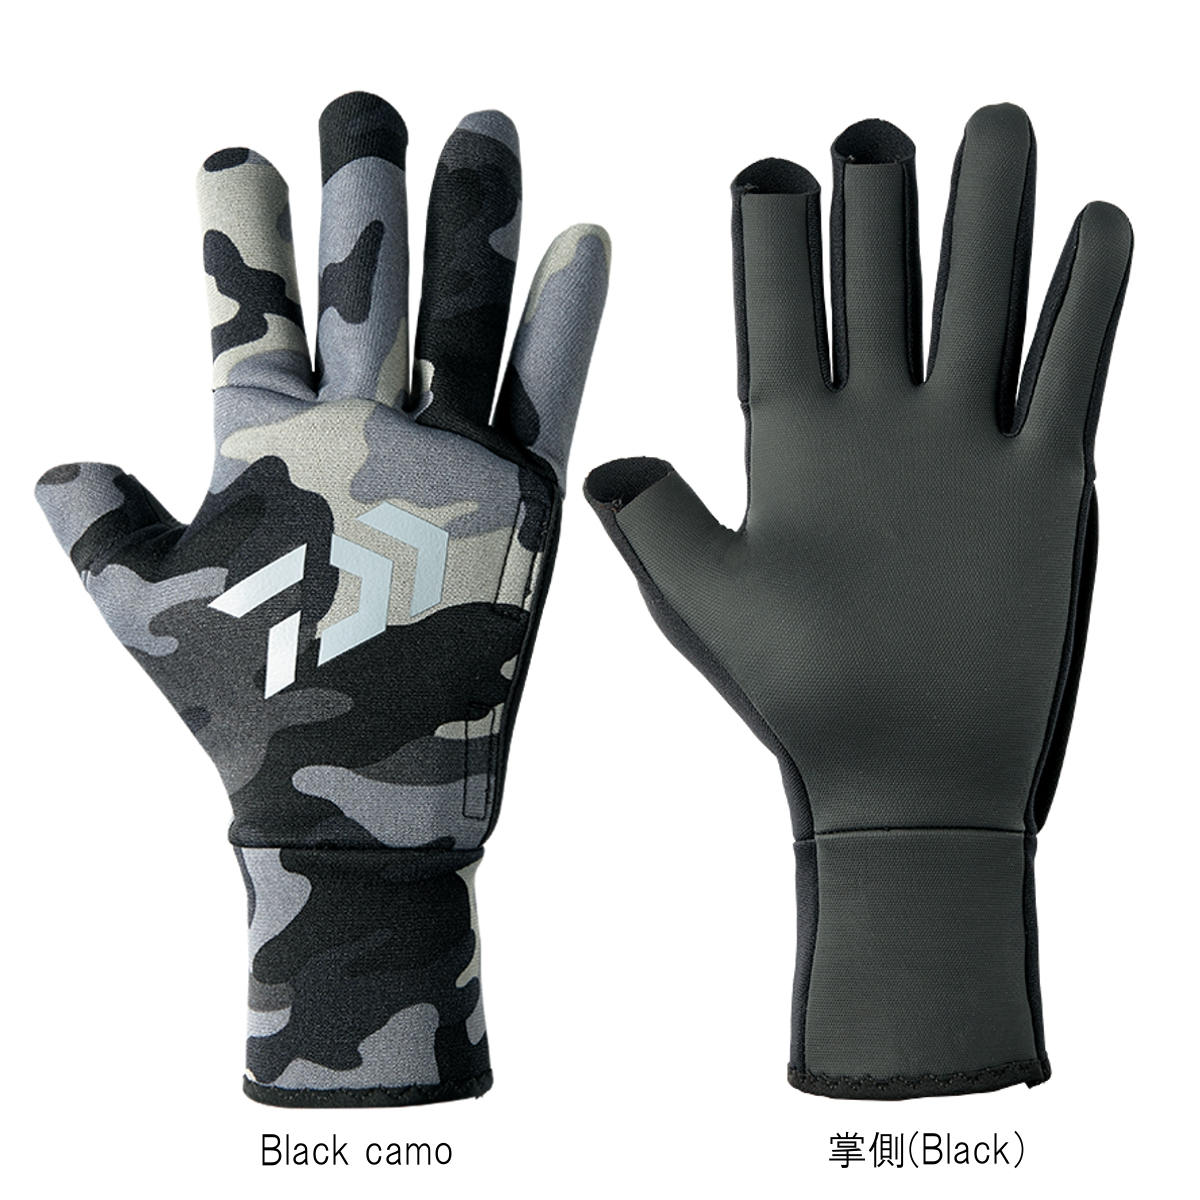 Daiwa chloroprene glove three cut DG-7107W L Black camo